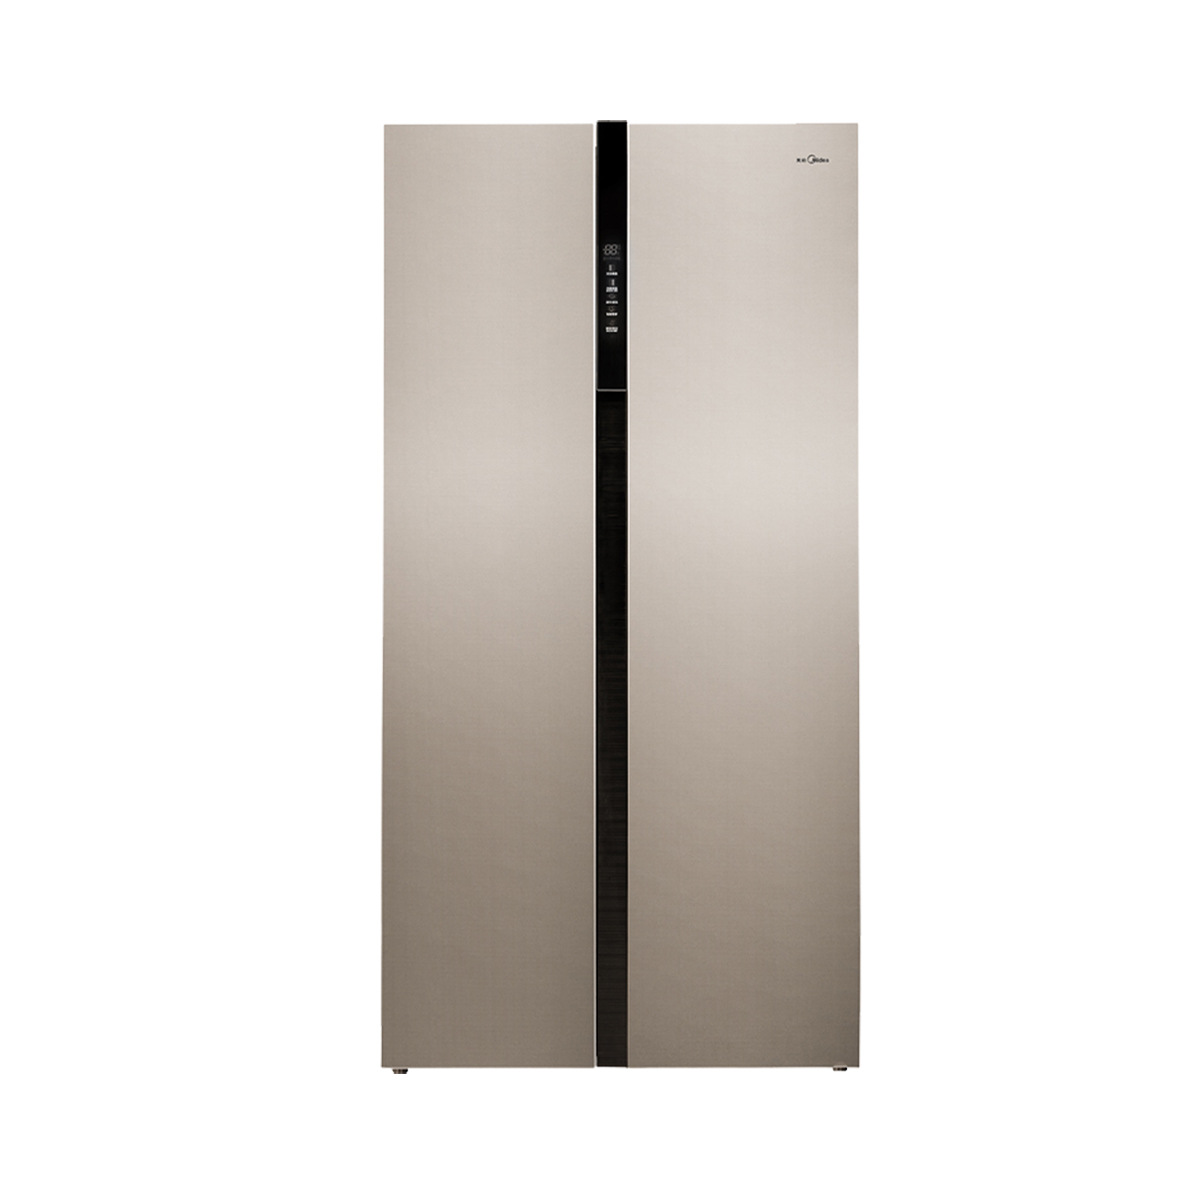 Midea BCD-535WKZM(E) double door refrigerator double door air-cooled and frost-free smart